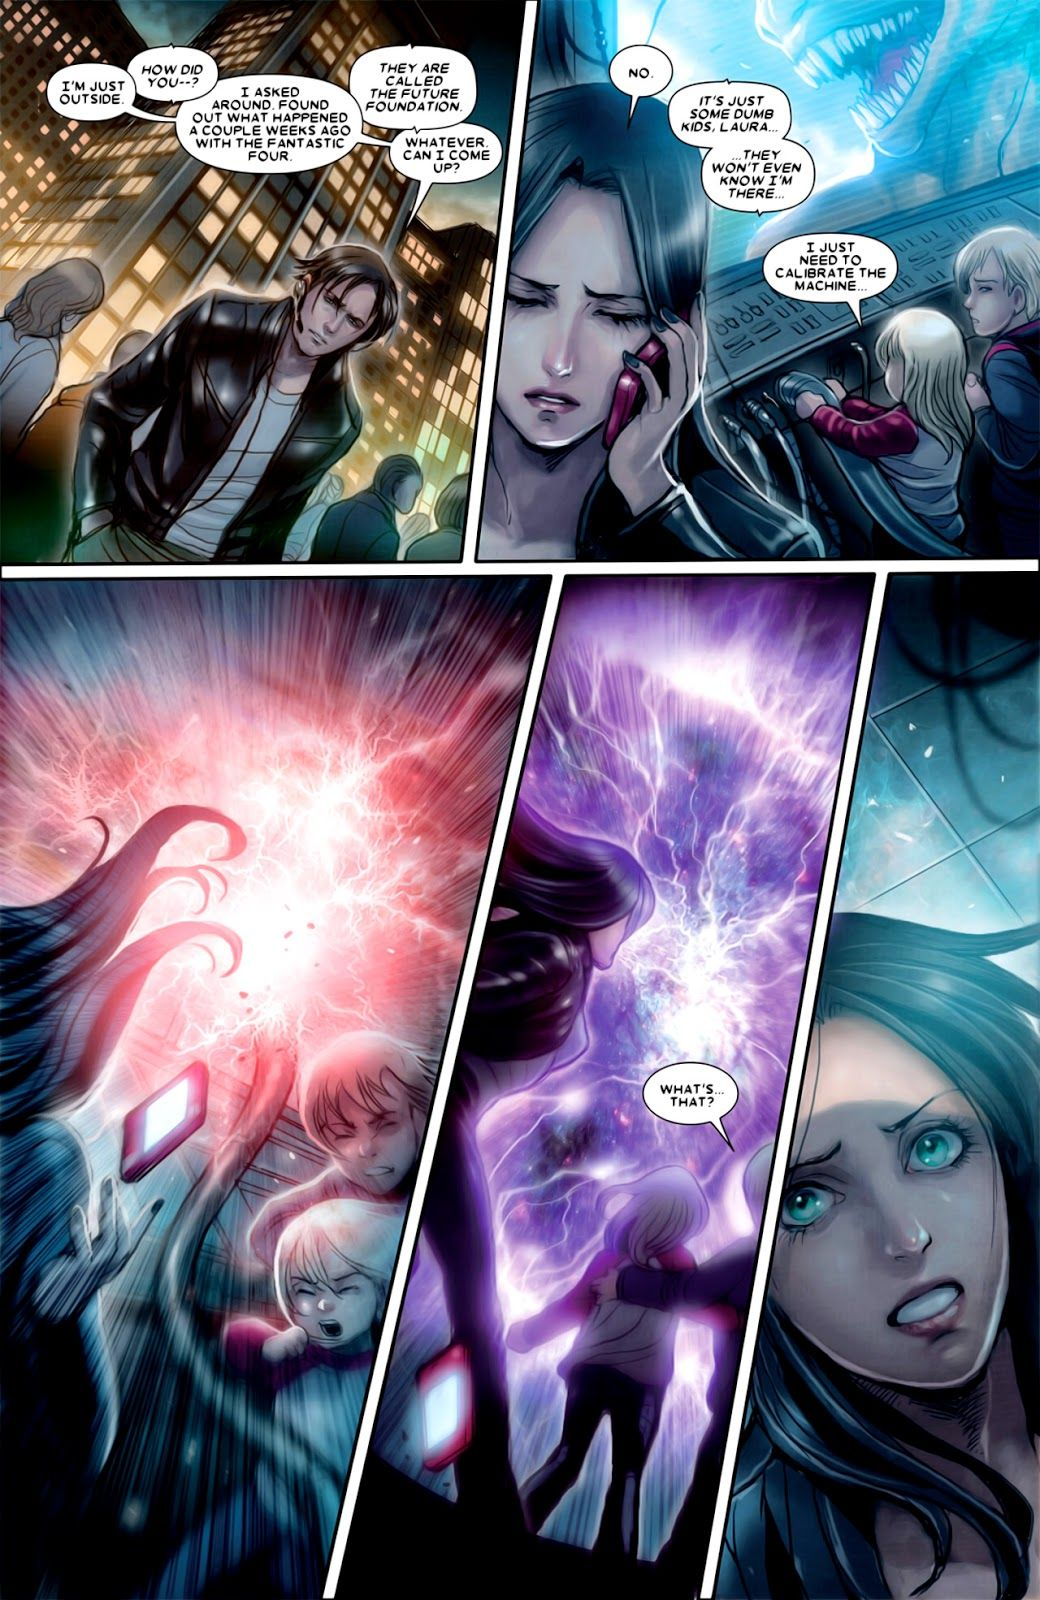 X 23 Ii Issue 17 Read X 23 Ii Issue 17 Comic Online In High Quality Comics Comics Online Comic Page